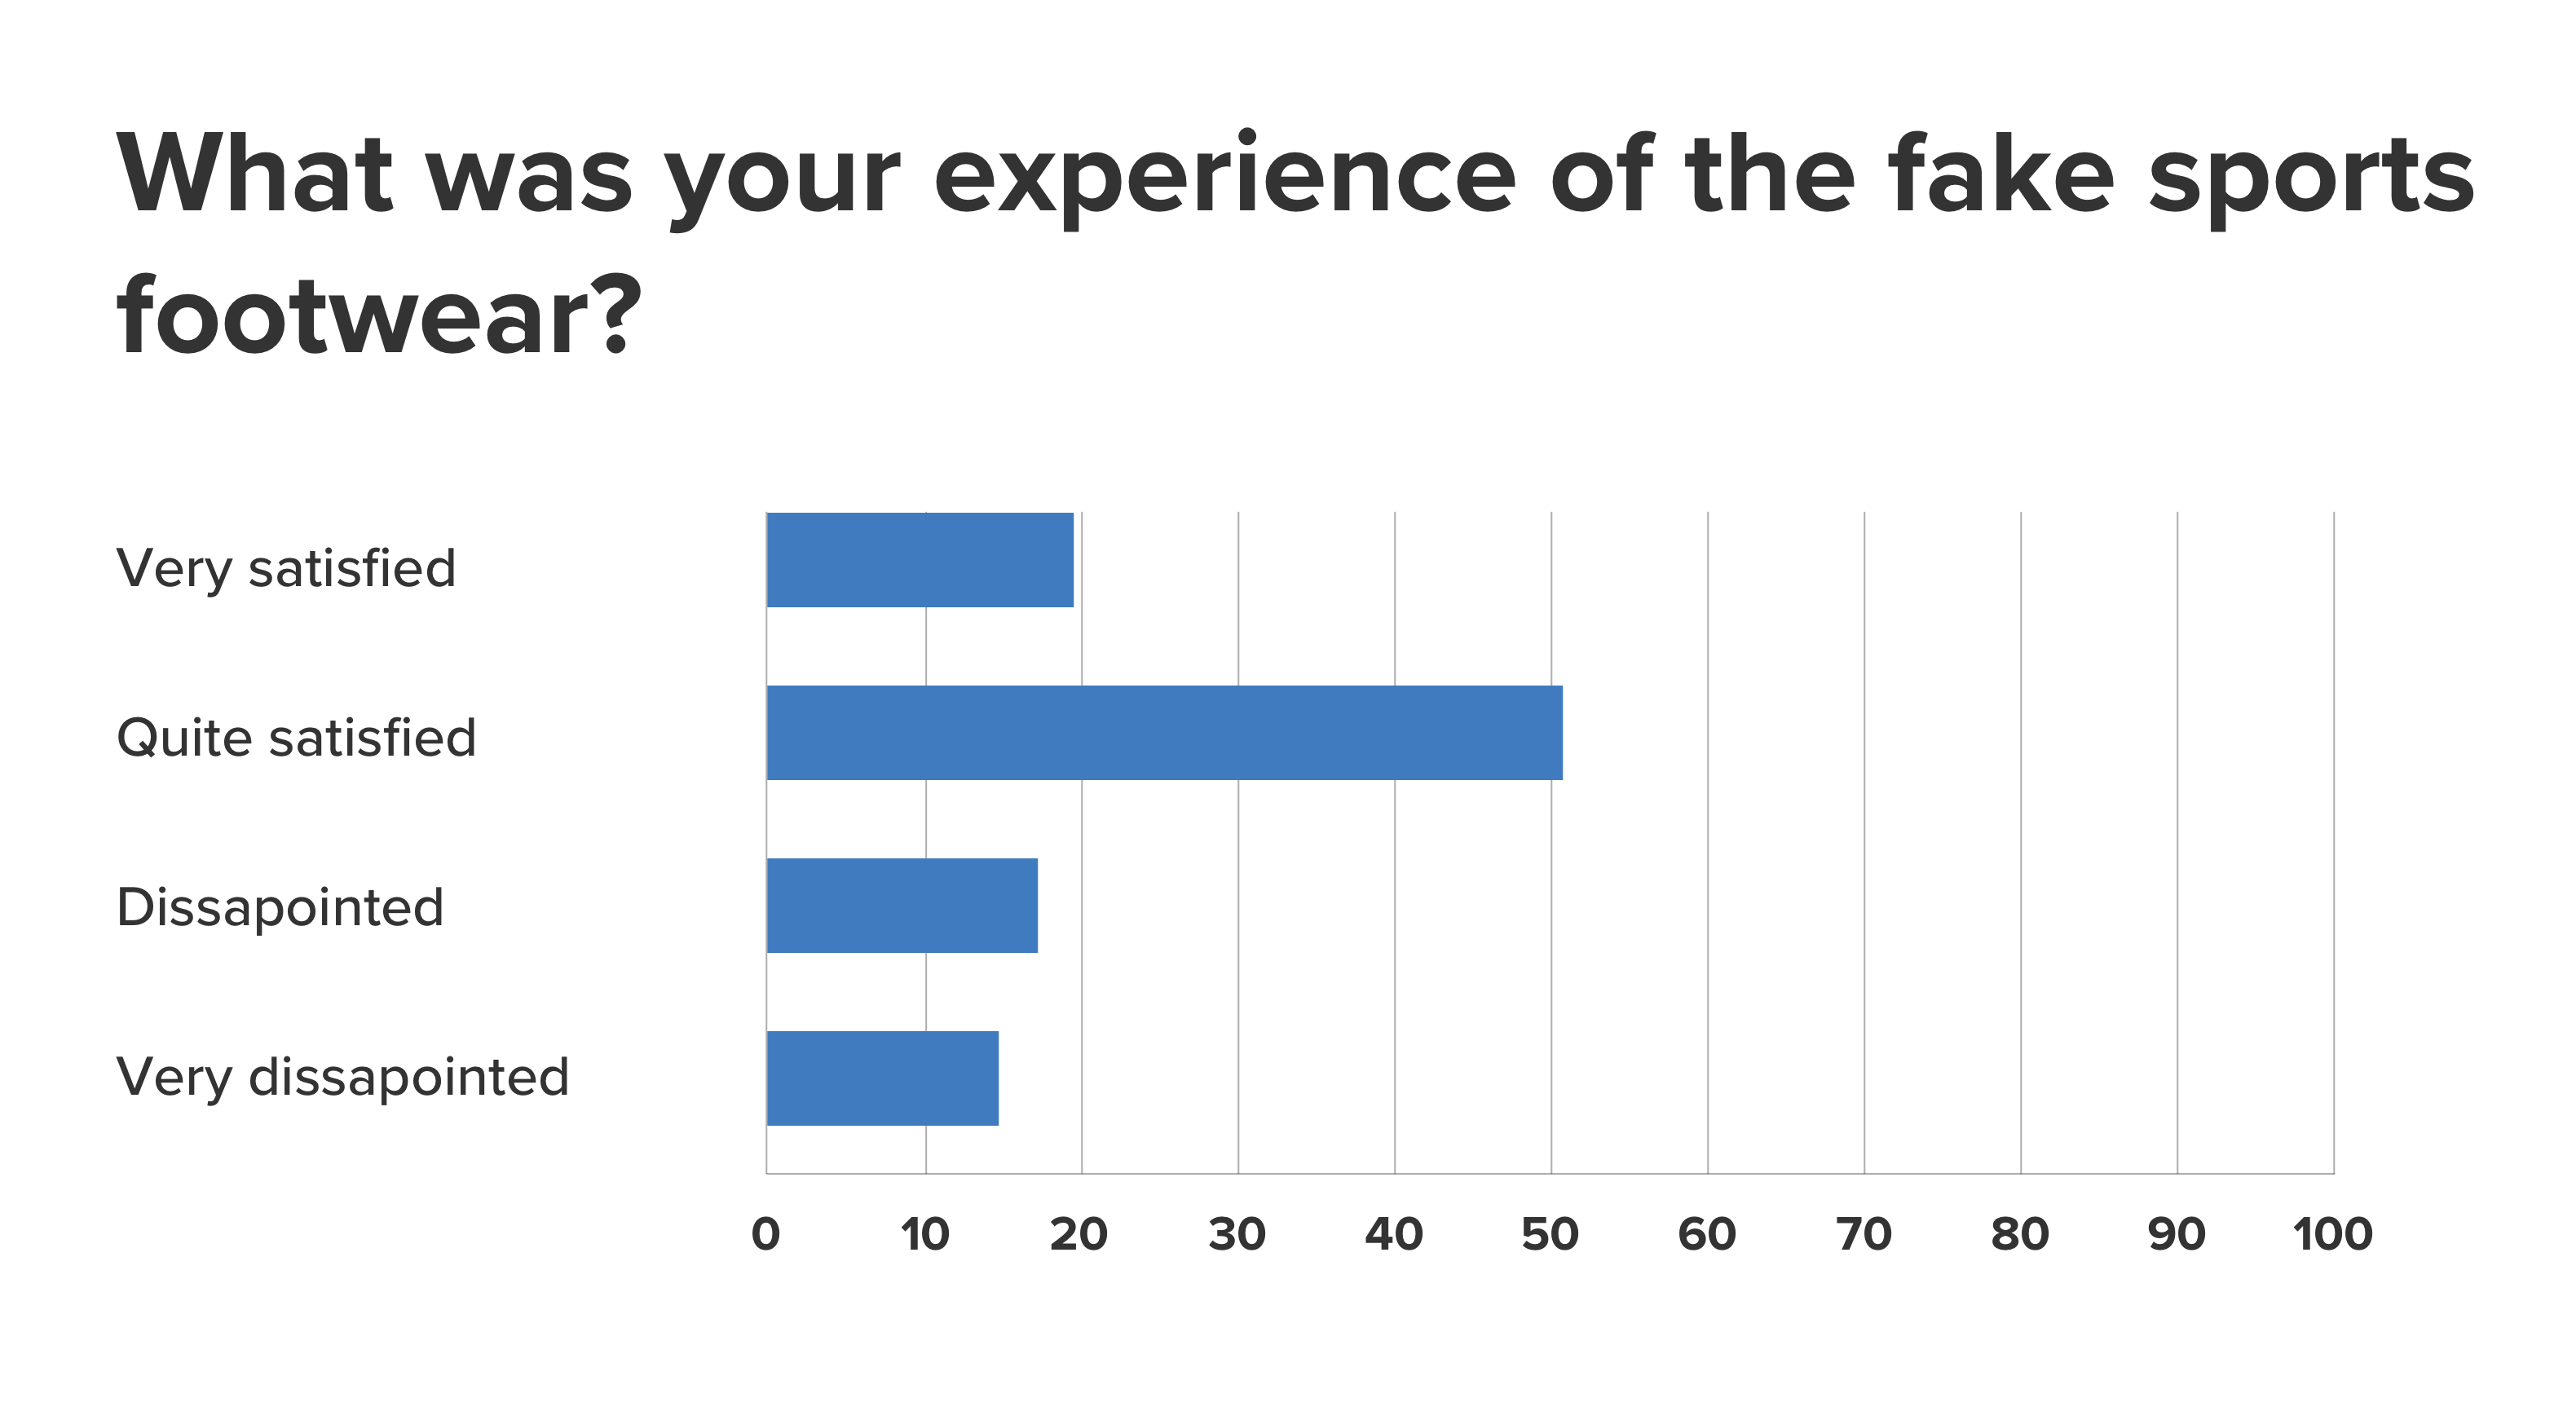 fake-footwear-experience-question